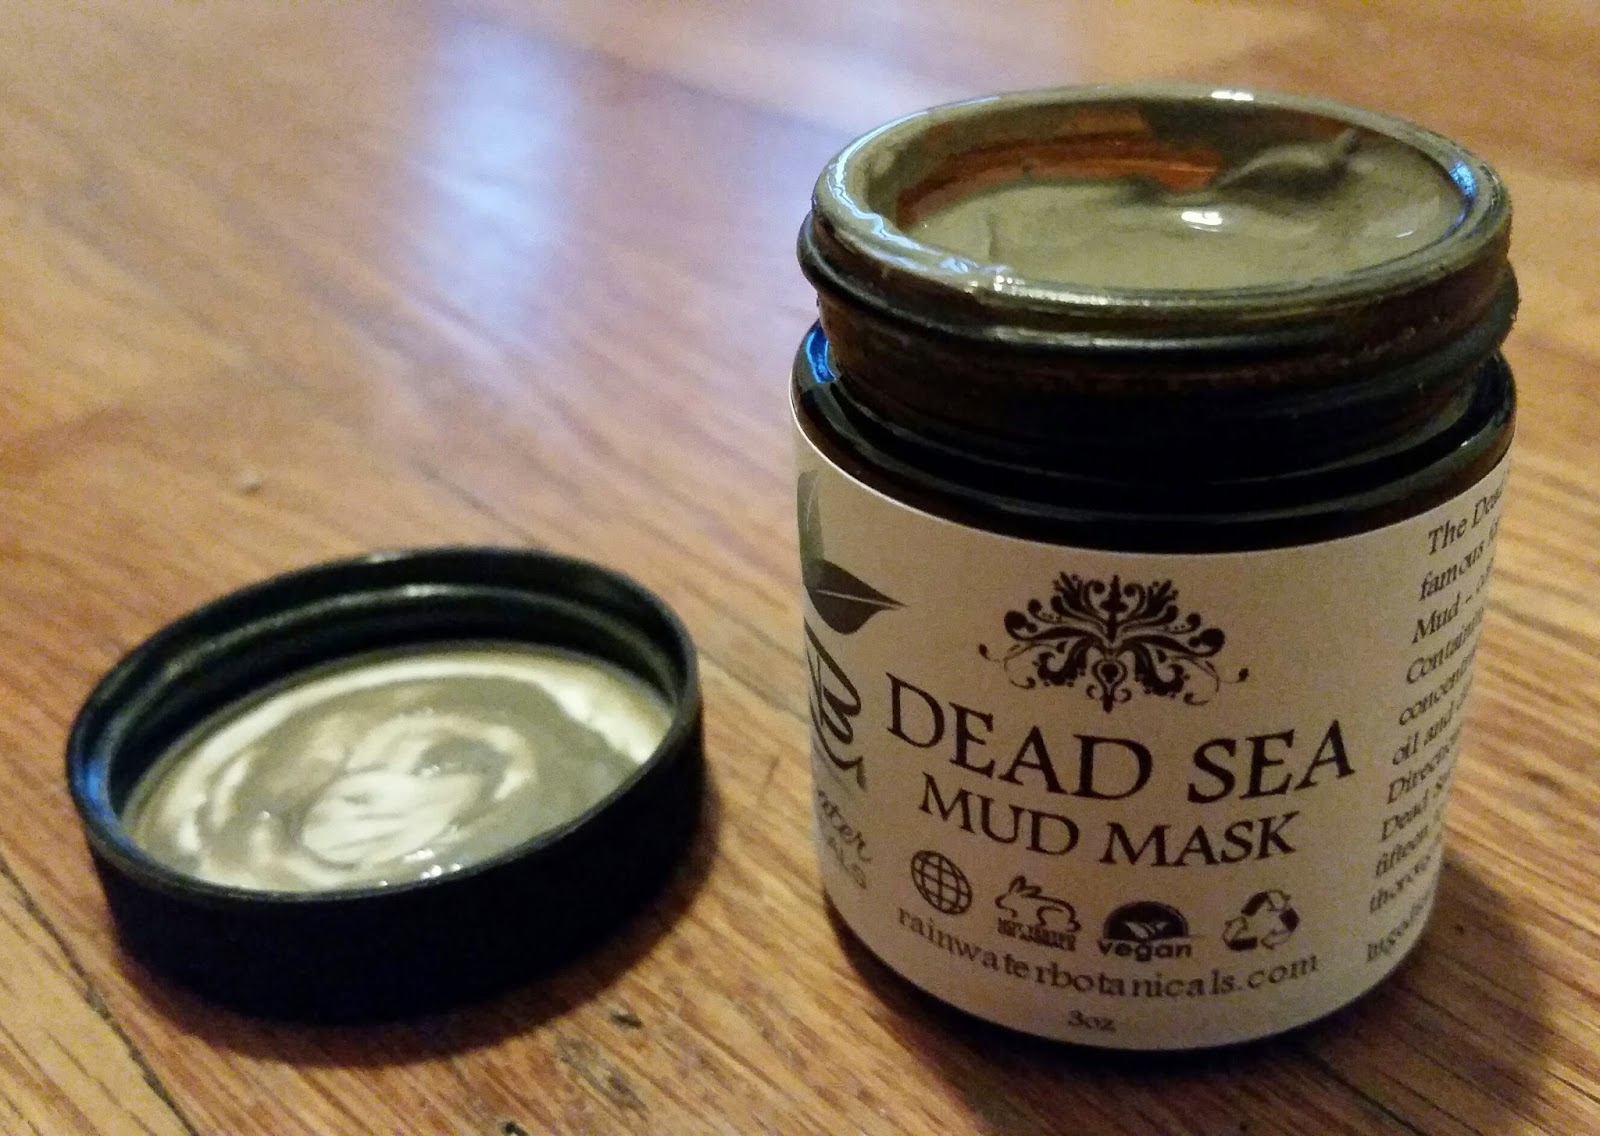 Jar of Dead Sea mud mask